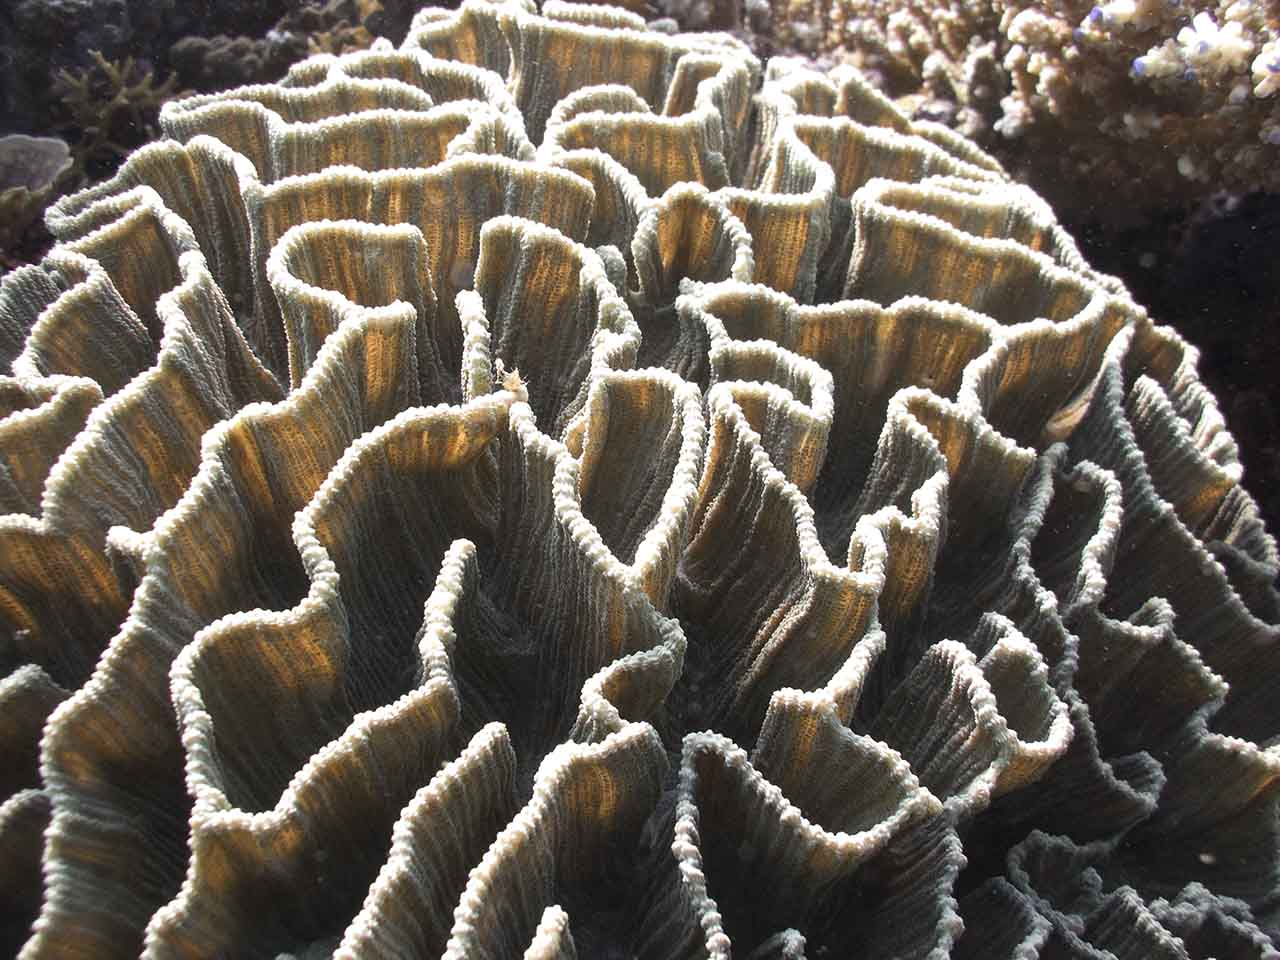 Sunlight glows through thin coral walls